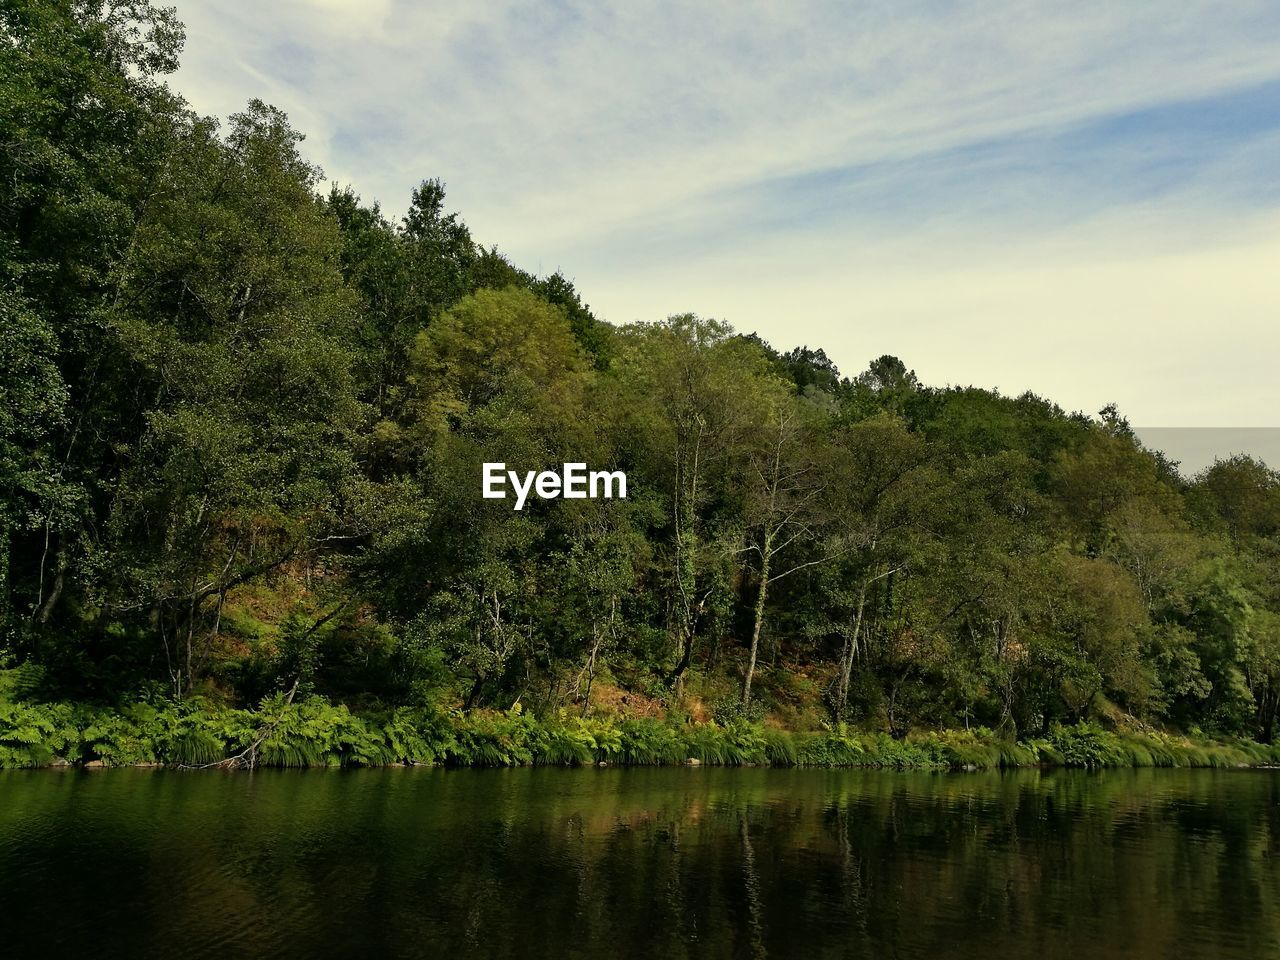 tree, nature, lake, flora, growth, forest, water, landscape, no people, sky, beauty in nature, outdoors, scenery